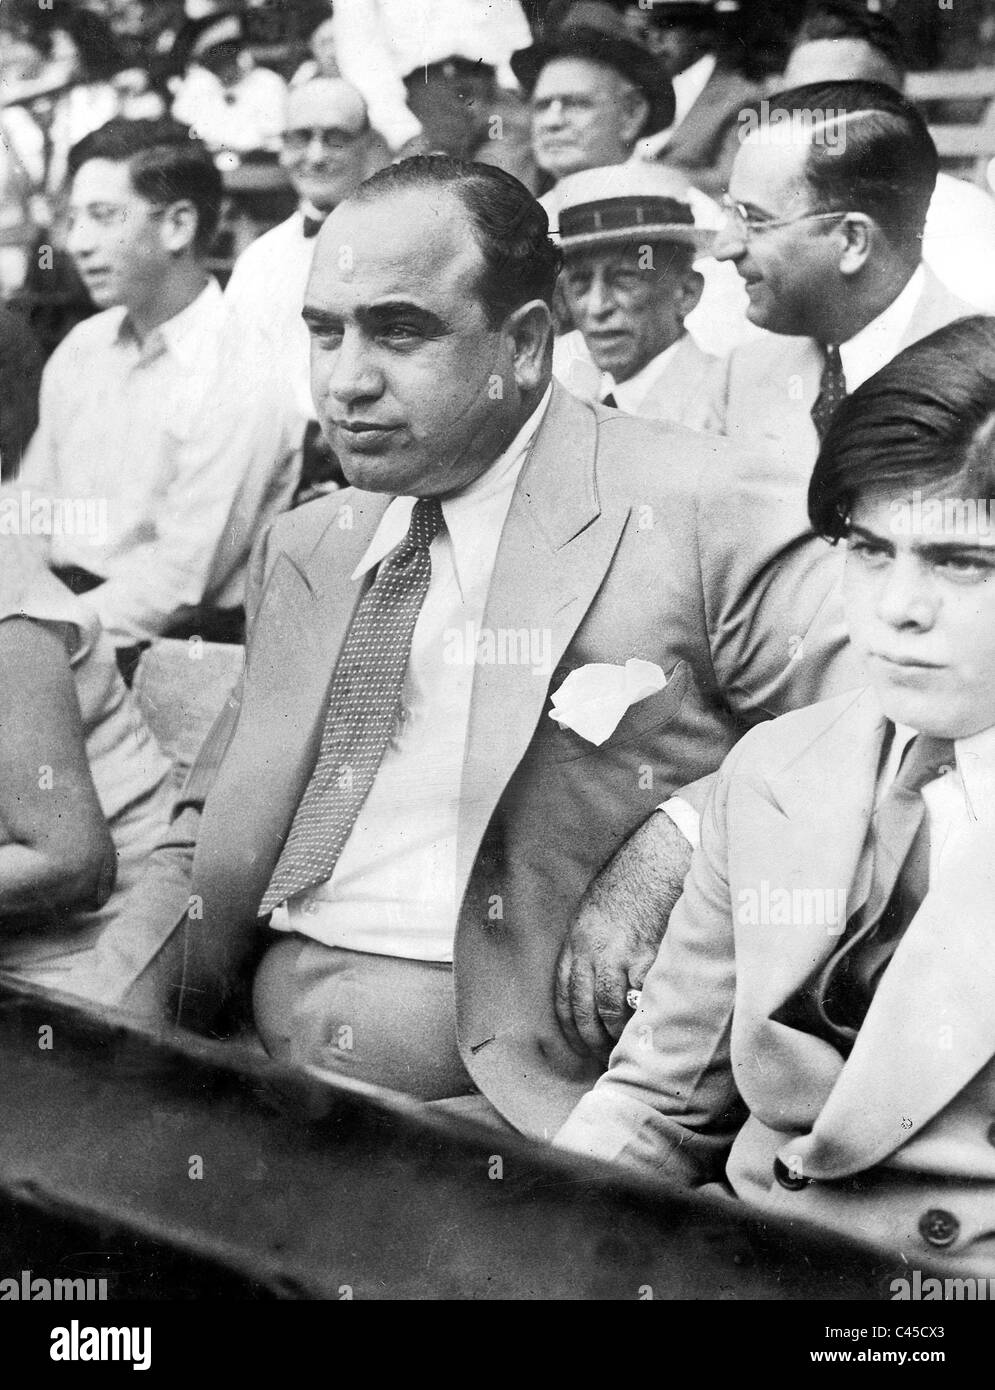 Al Capone Black and White Stock Photos & Images - Alamy